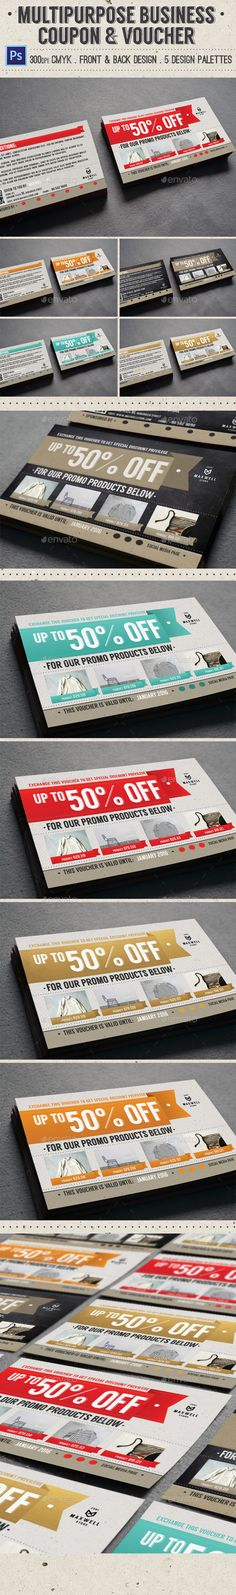 Winter Ice Gift Voucher Gift vouchers, Print templates and - business coupon template